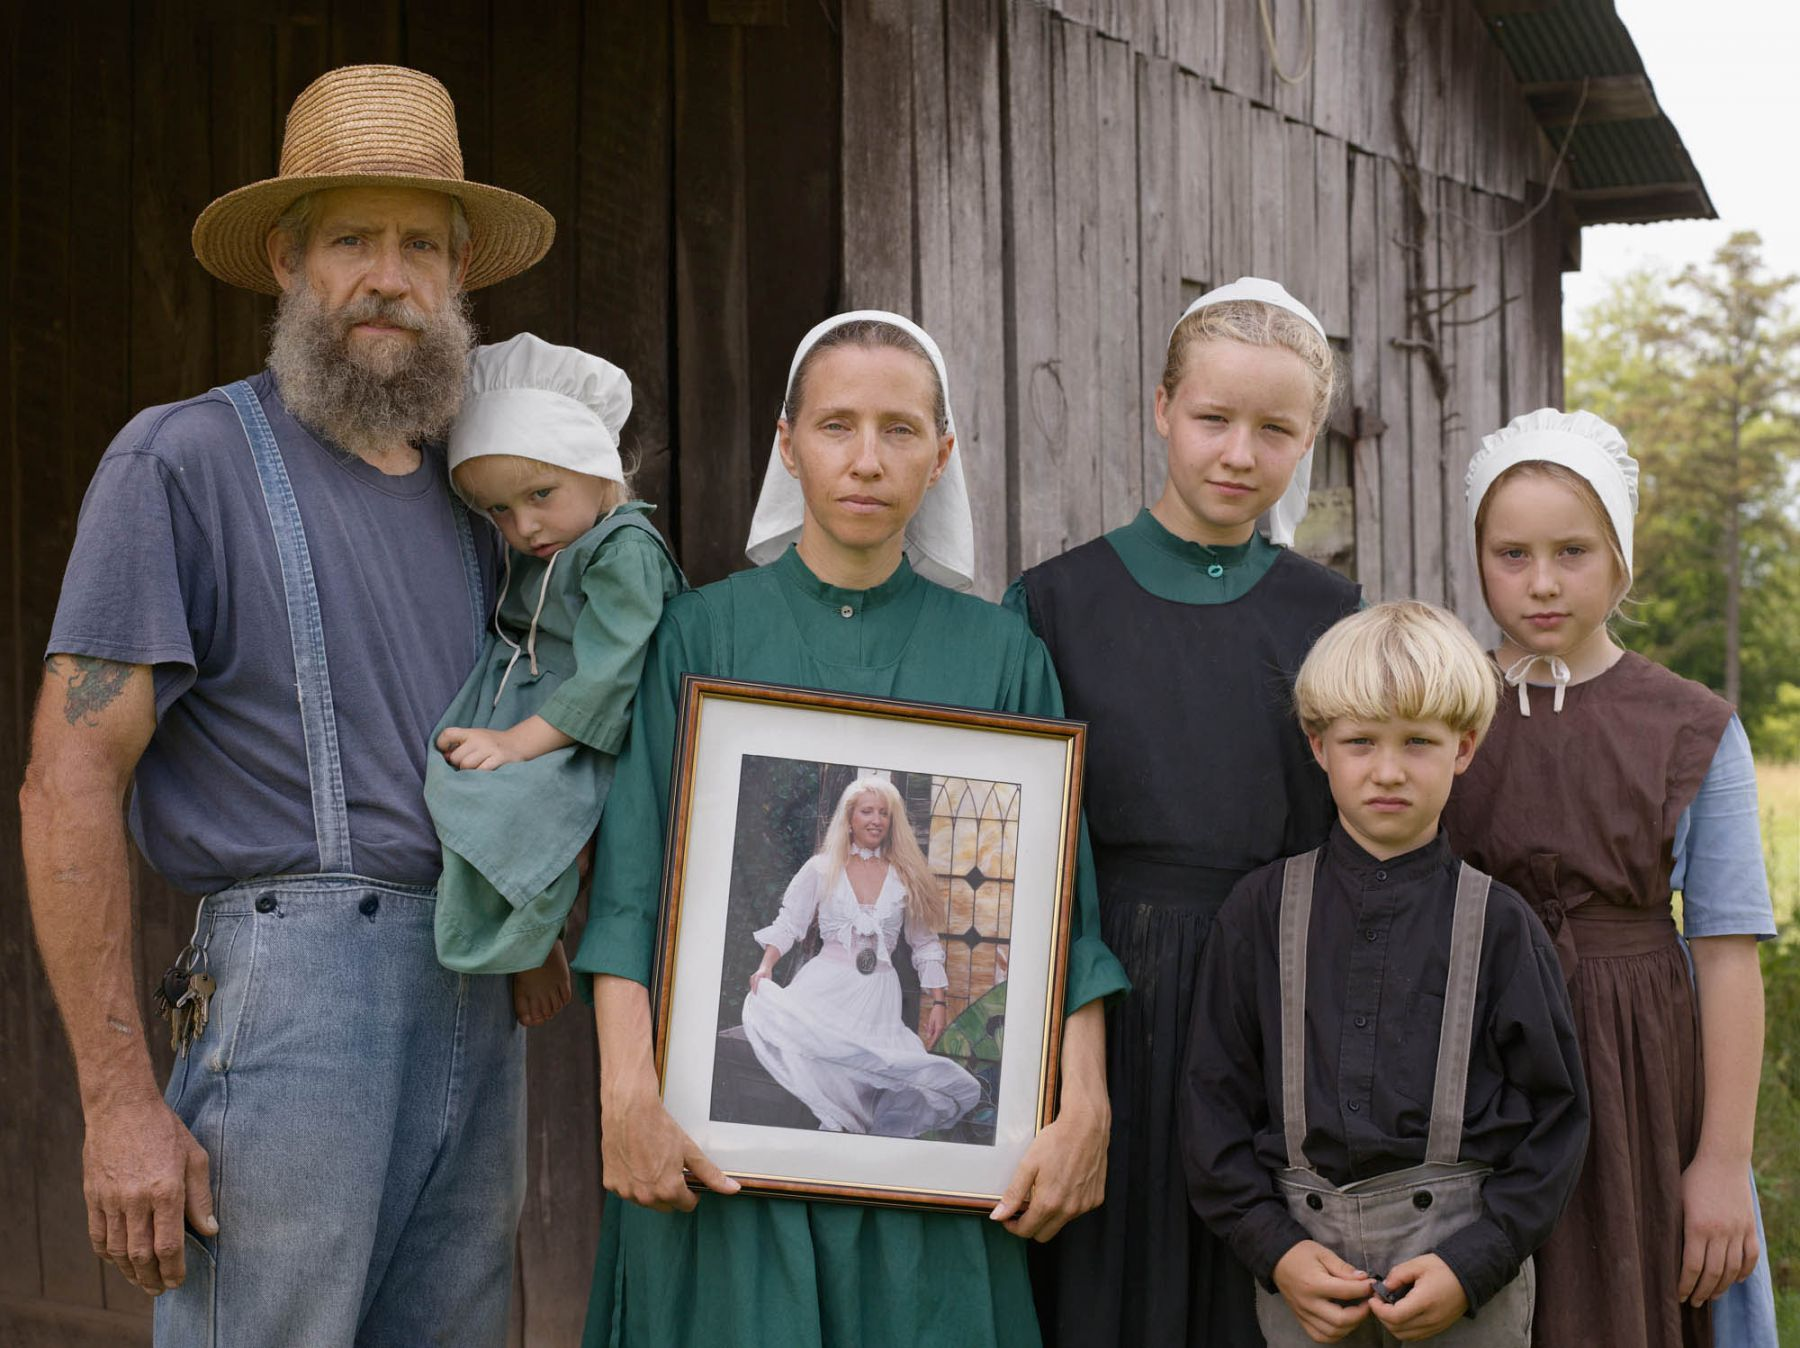 LUCAS FOGLIA, Family Portrait with the Photograph George Took of Christina Before They Were Married, Tennessee, 2008